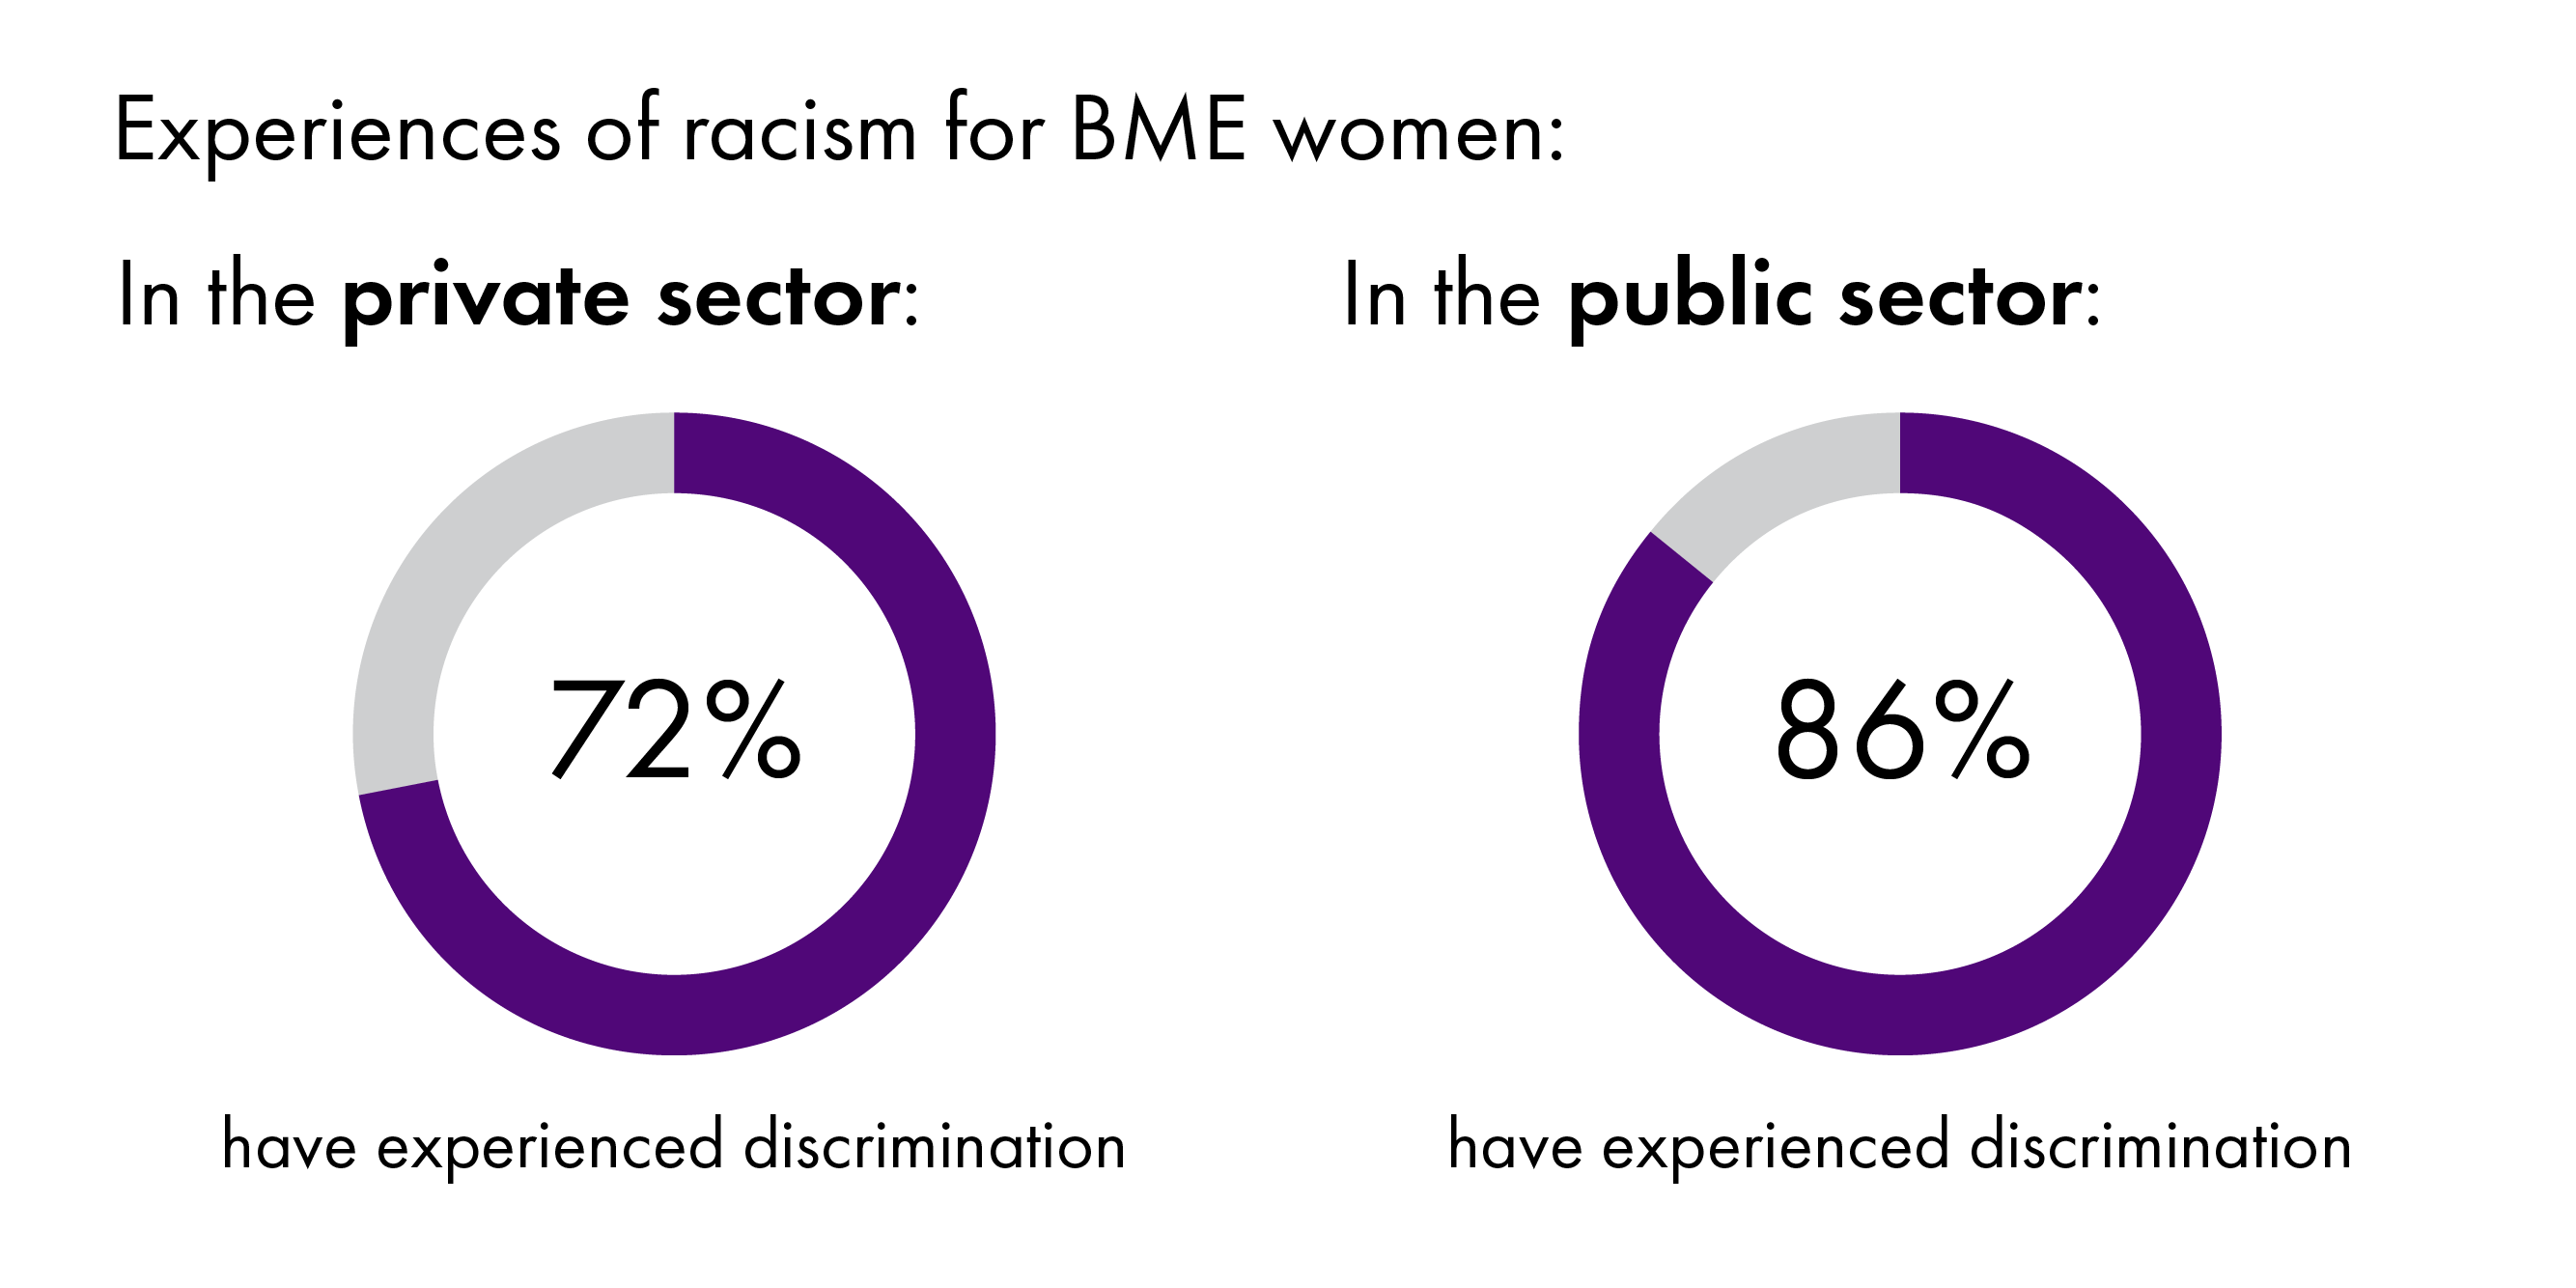 A chart showing BME women experience more racism in public sector employment than private sector though both are high, 86% and 72% respectively.